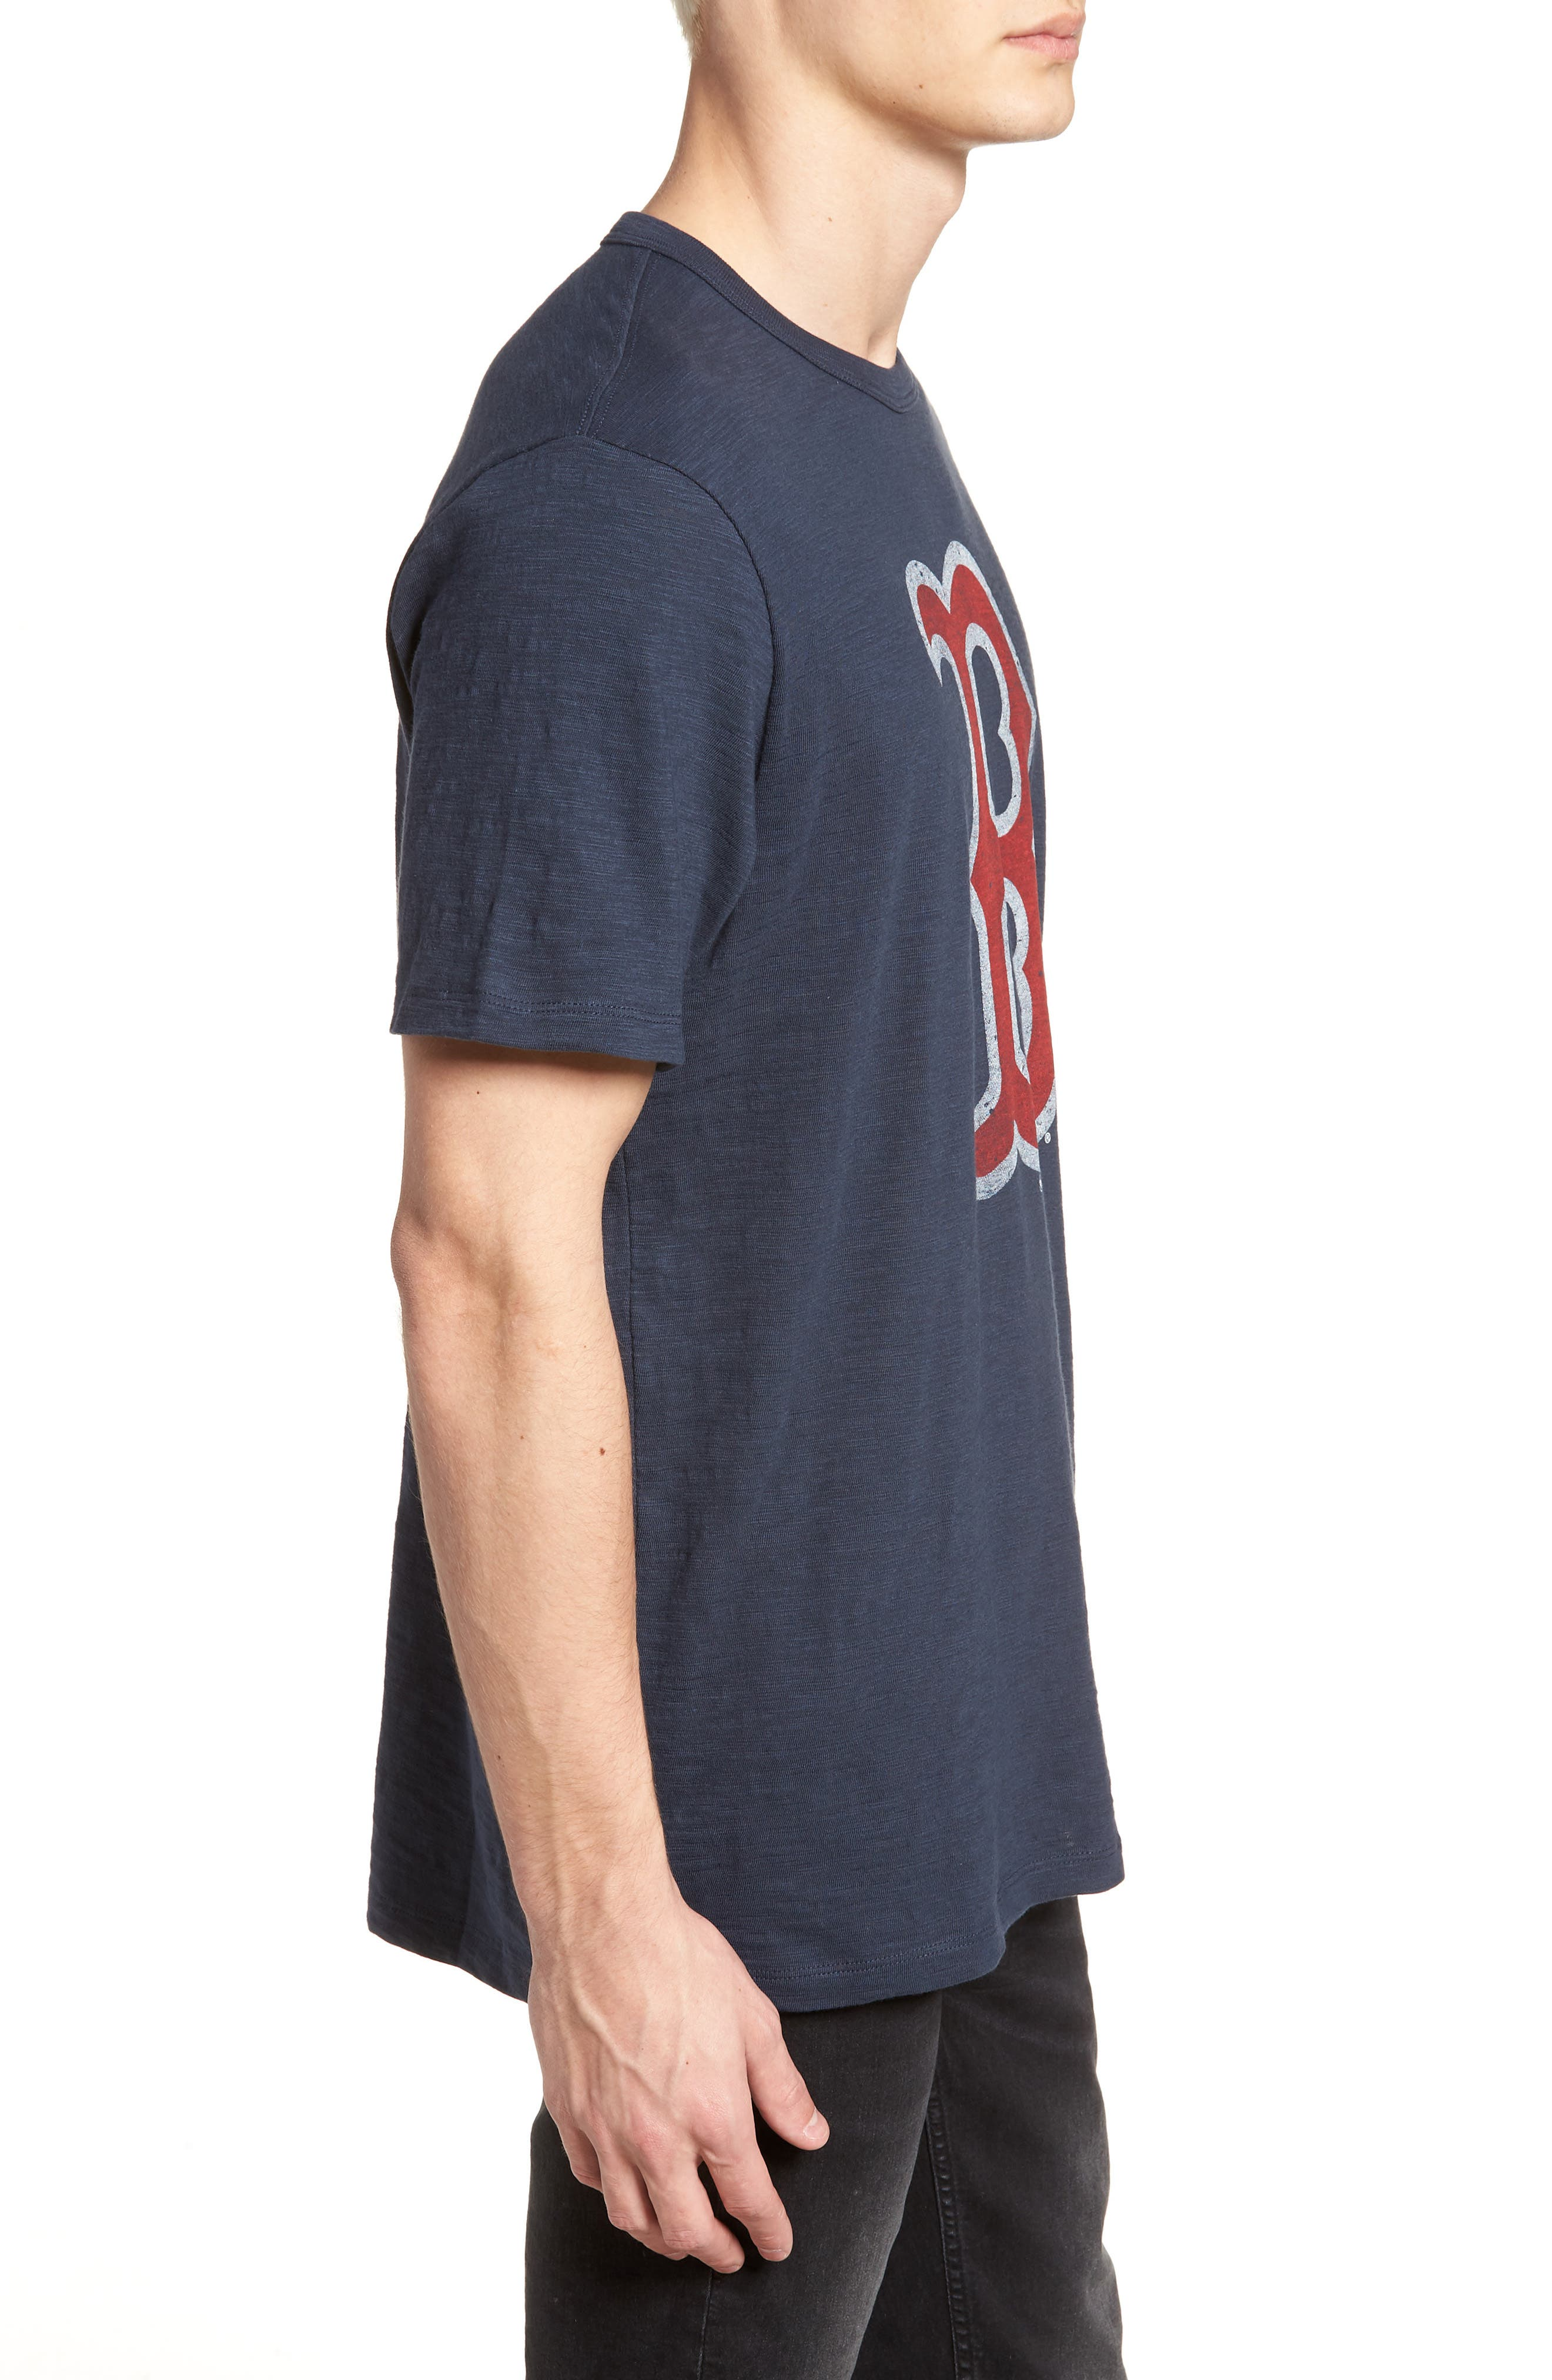 Grit Scrum Boston Red Sox T-Shirt,                             Alternate thumbnail 3, color,                             410